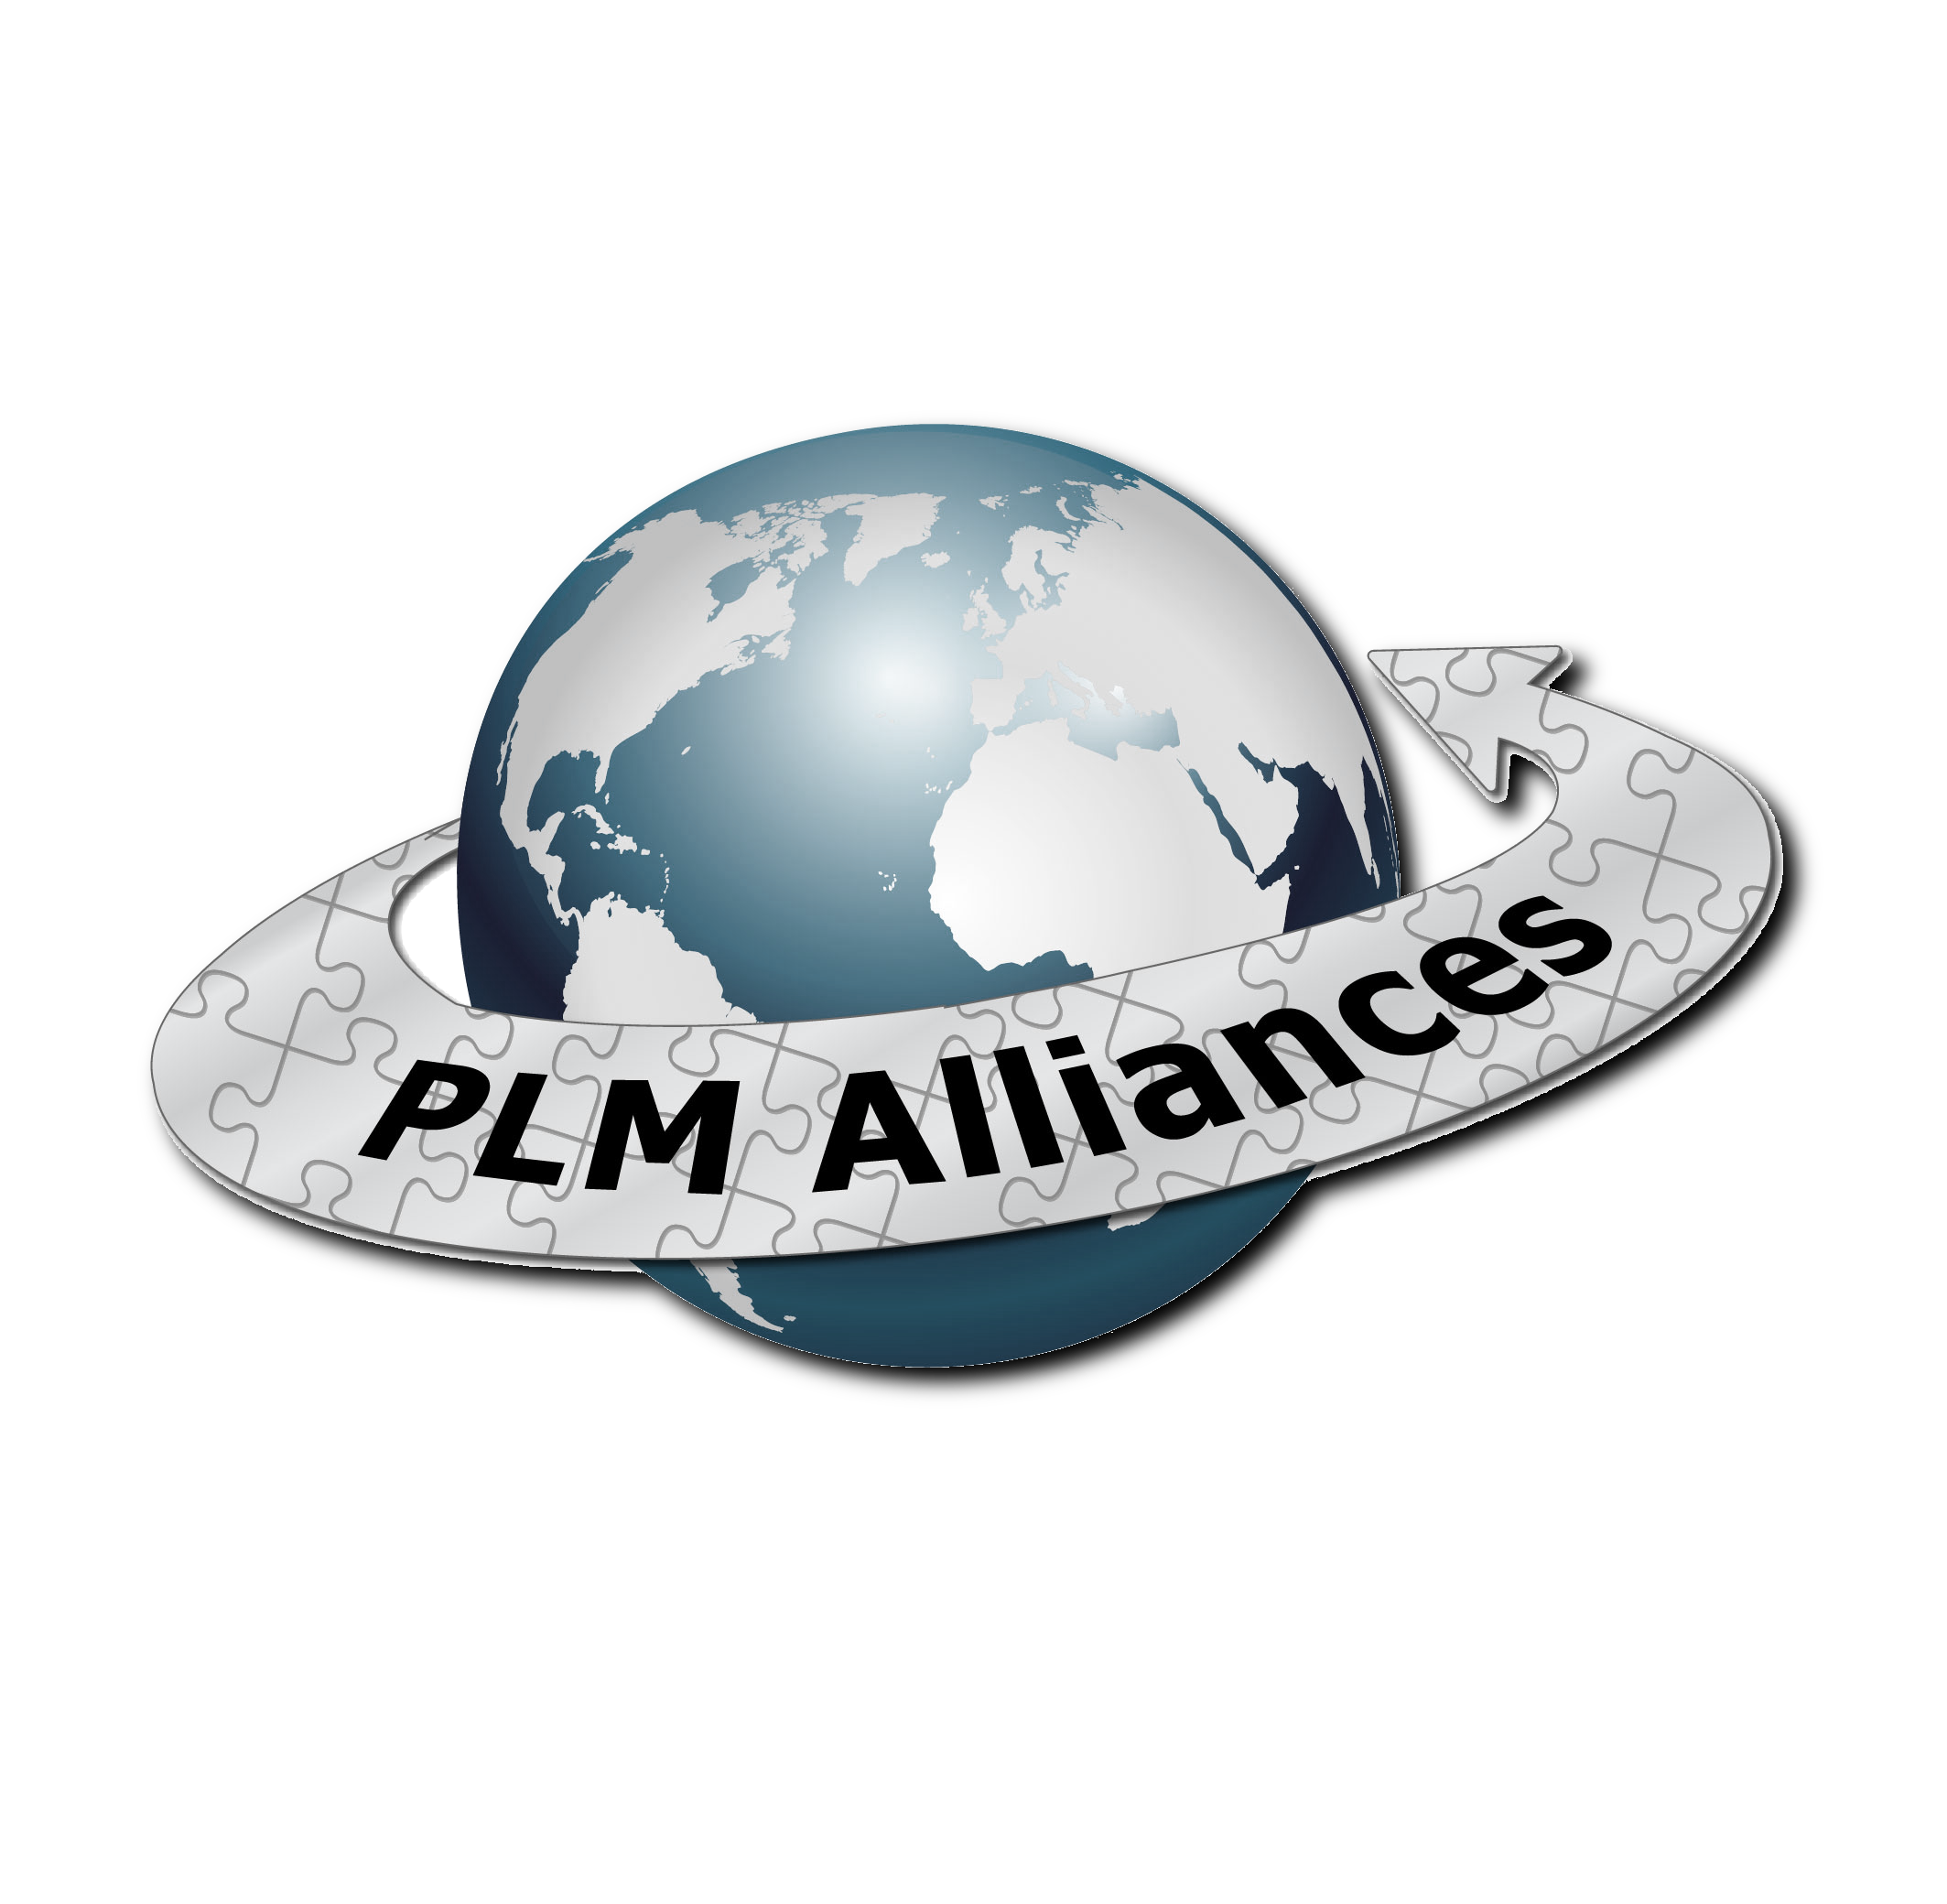 PLM Alliances